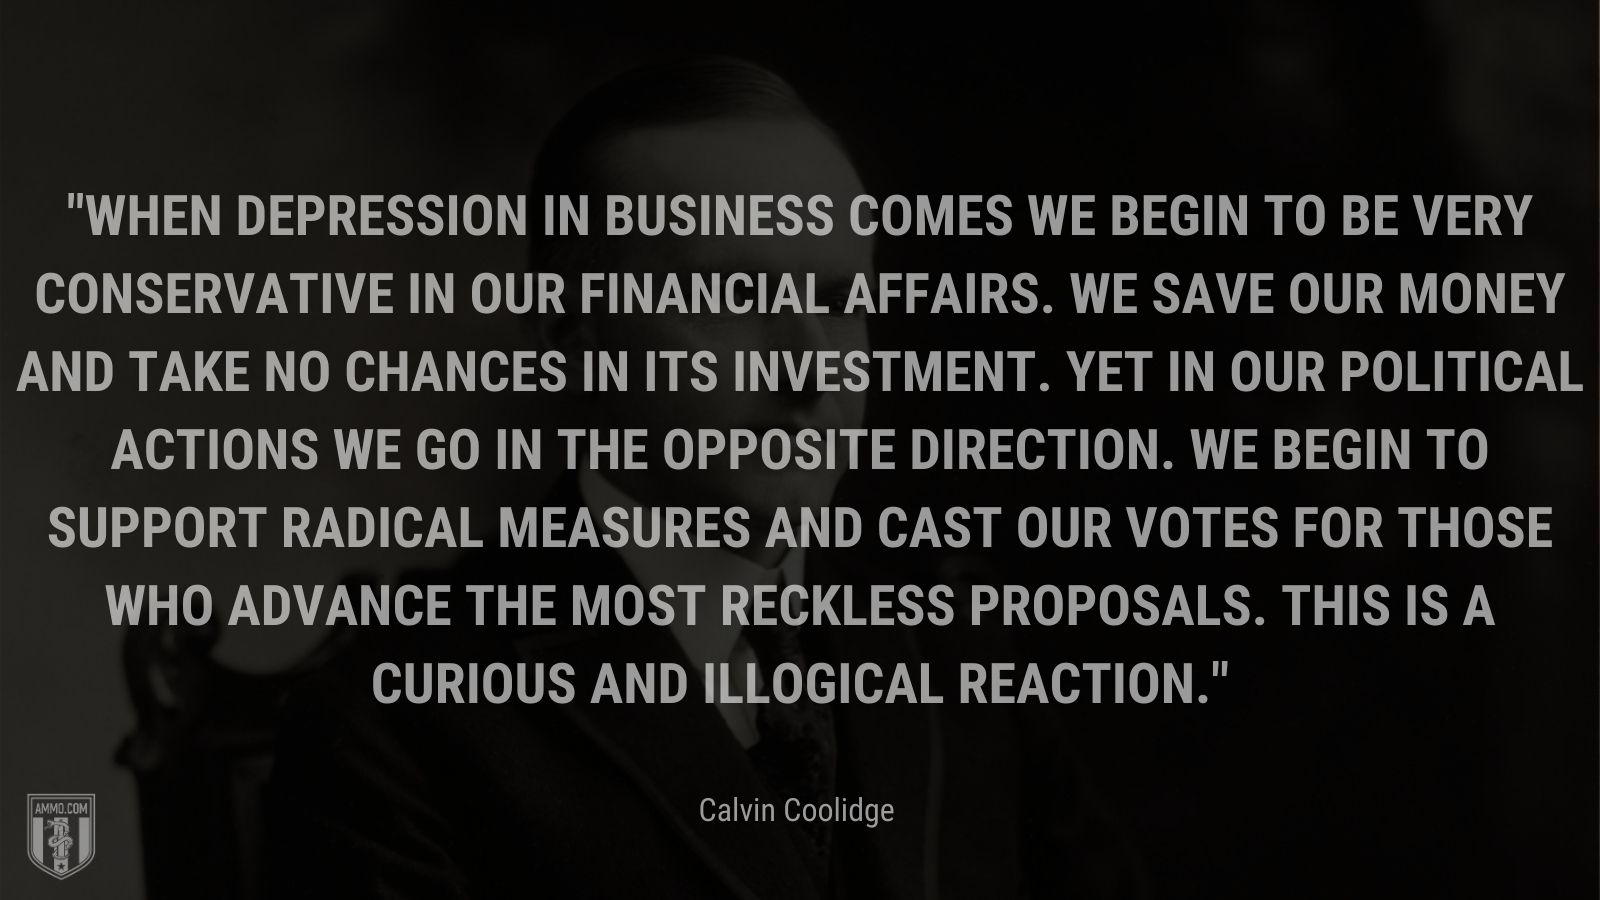 """""""When depression in business comes we begin to be very conservative in our financial affairs. We save our money and take no chances in its investment. Yet in our political actions we go in the opposite direction. We begin to support radical measures and cast our votes for those who advance the most reckless proposals. This is a curious and illogical reaction."""" - Calvin Coolidge"""